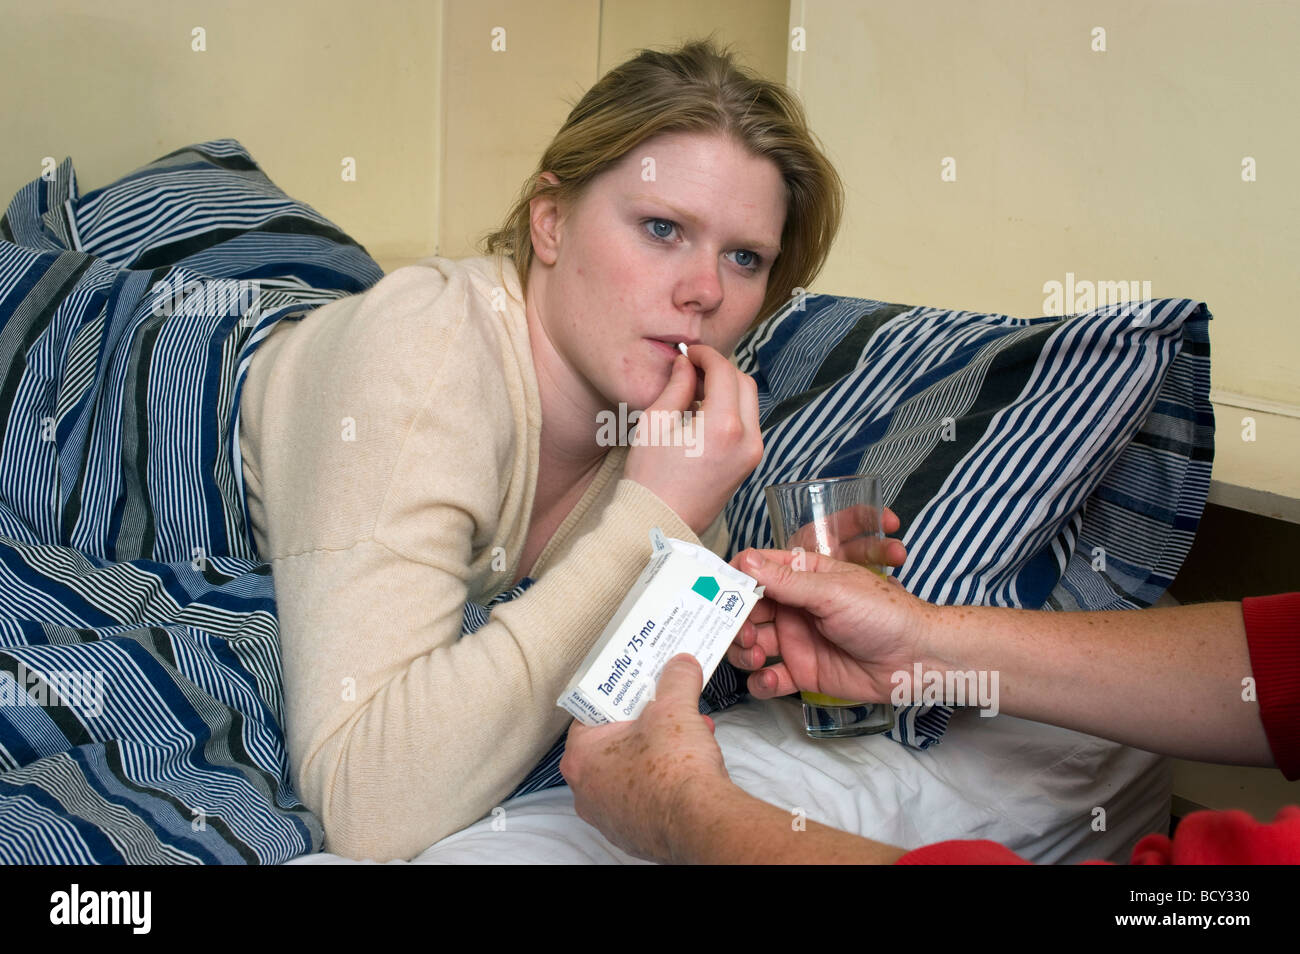 Young woman with Swine Flu lying in bed being given a Tamiflu Tablet - Stock Image